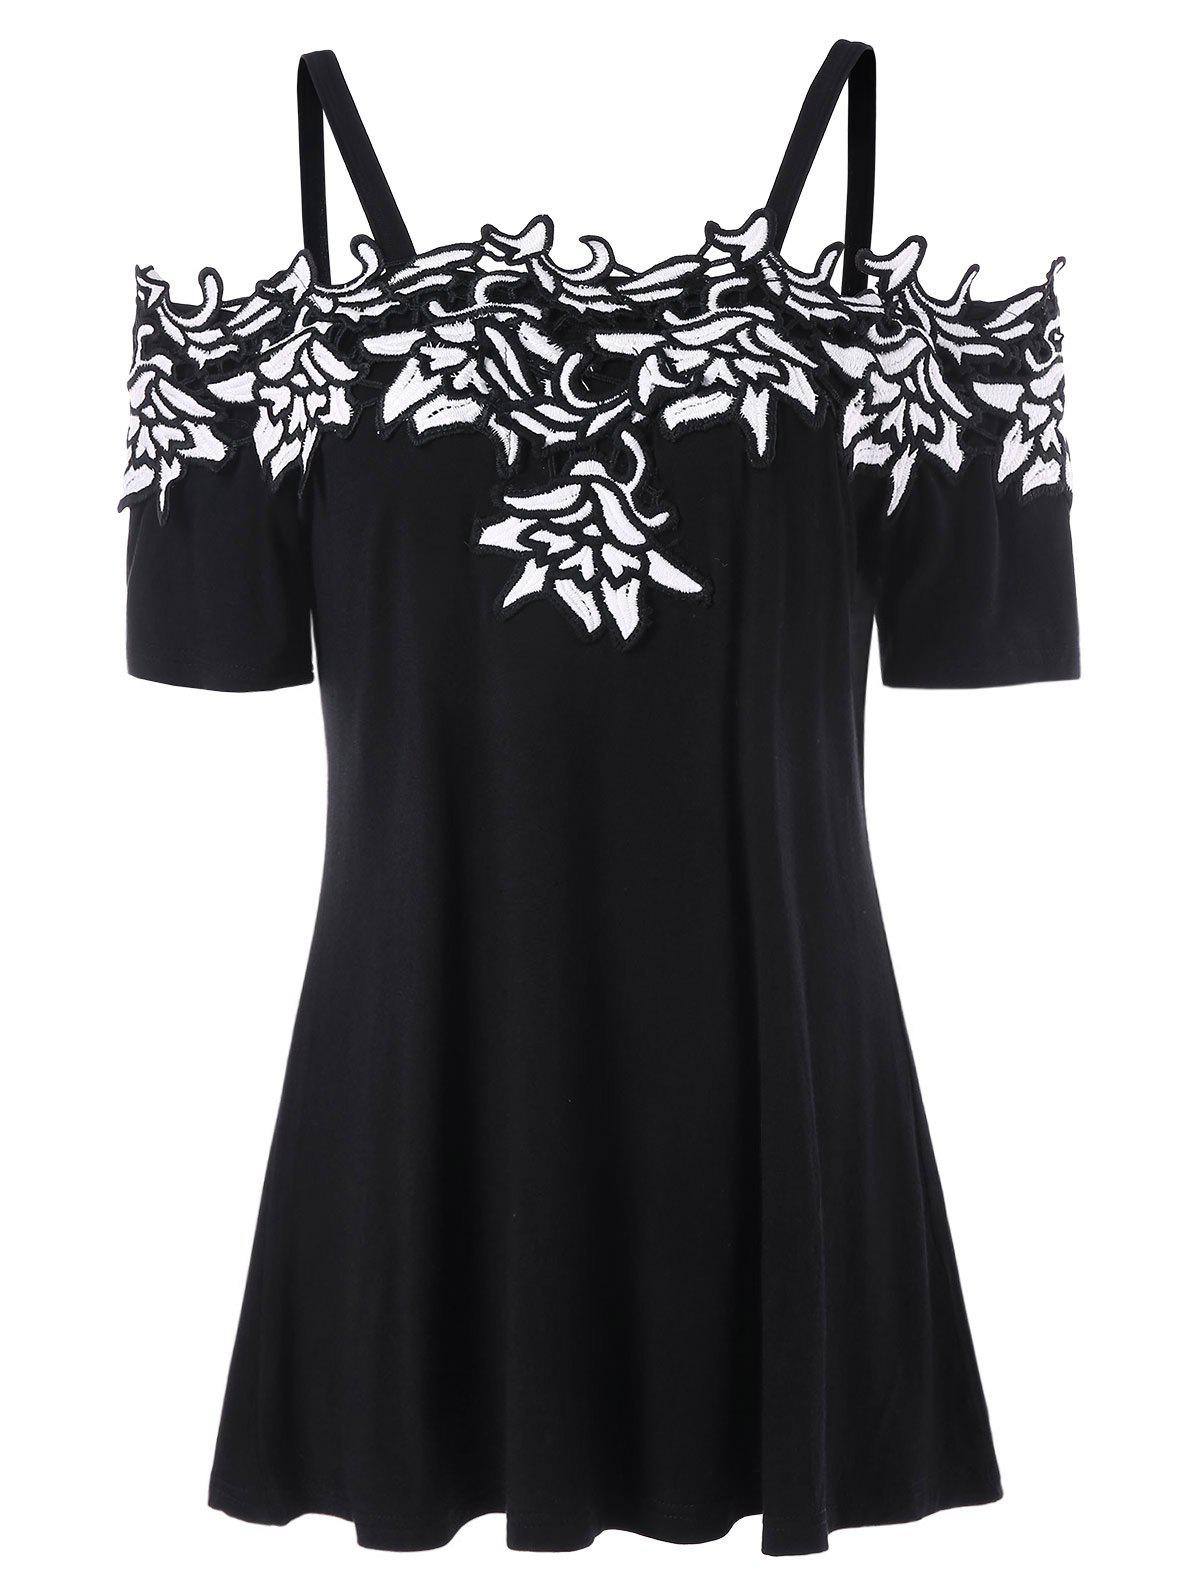 Hot Cold Shoulder Contrast Lace Applique T-shirt